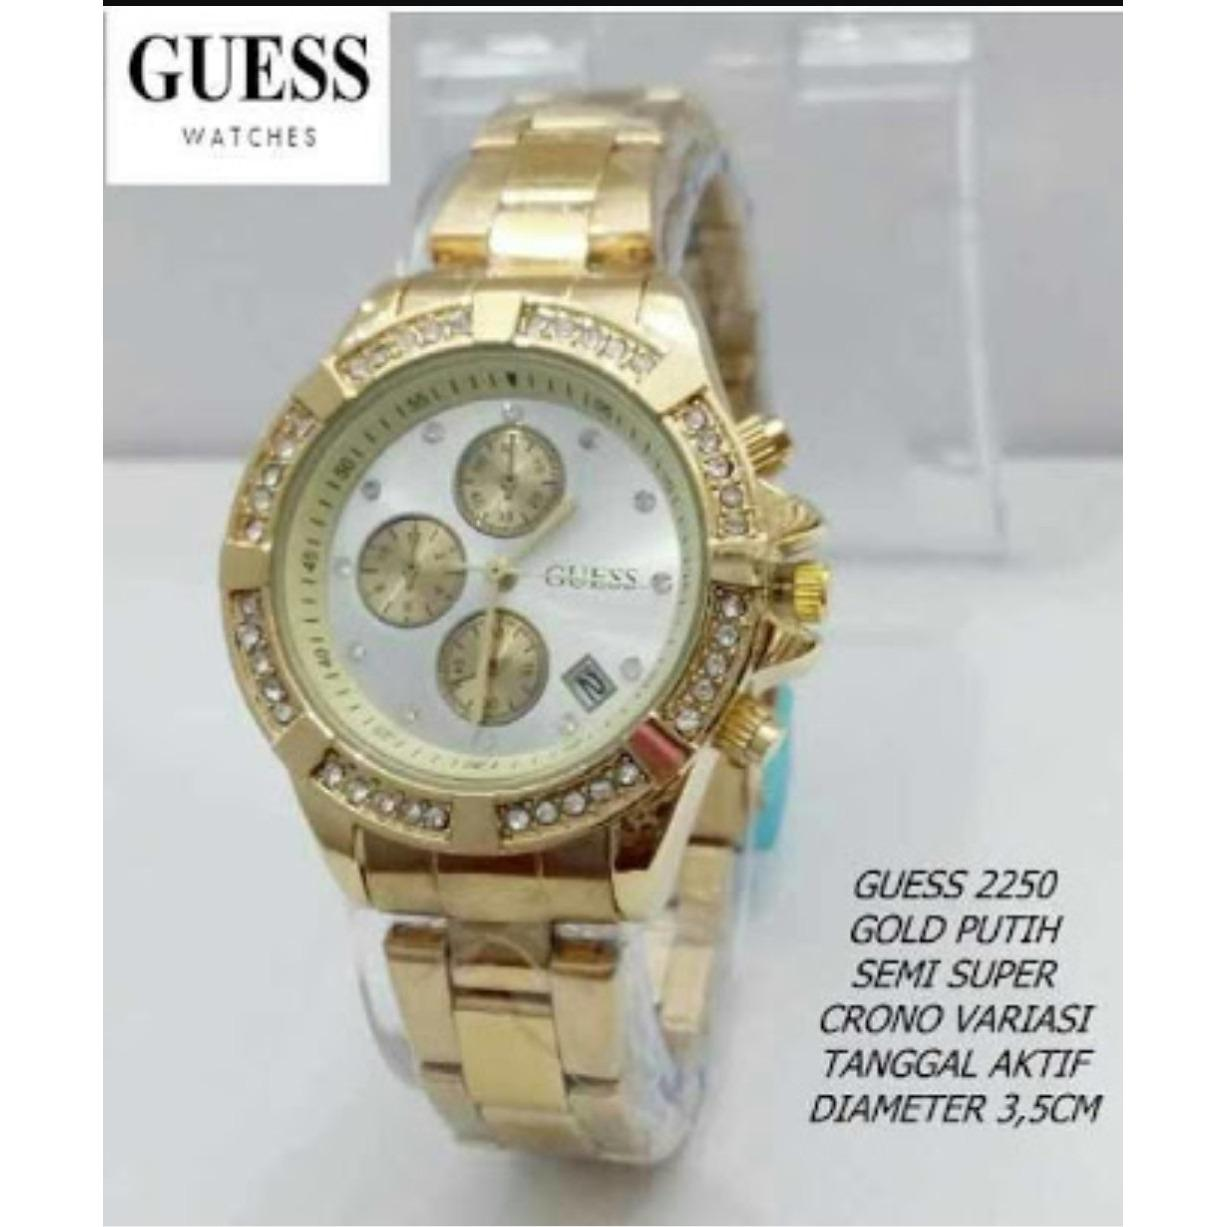 Guess W0669g1 Jam Tangan Pria Chronograph Leather Brown Rose Gold Lee Cooper Lc 41g A Multicolor Alexandria Limited Edition Elegant Series Wanita Formal Kasual Terbaru